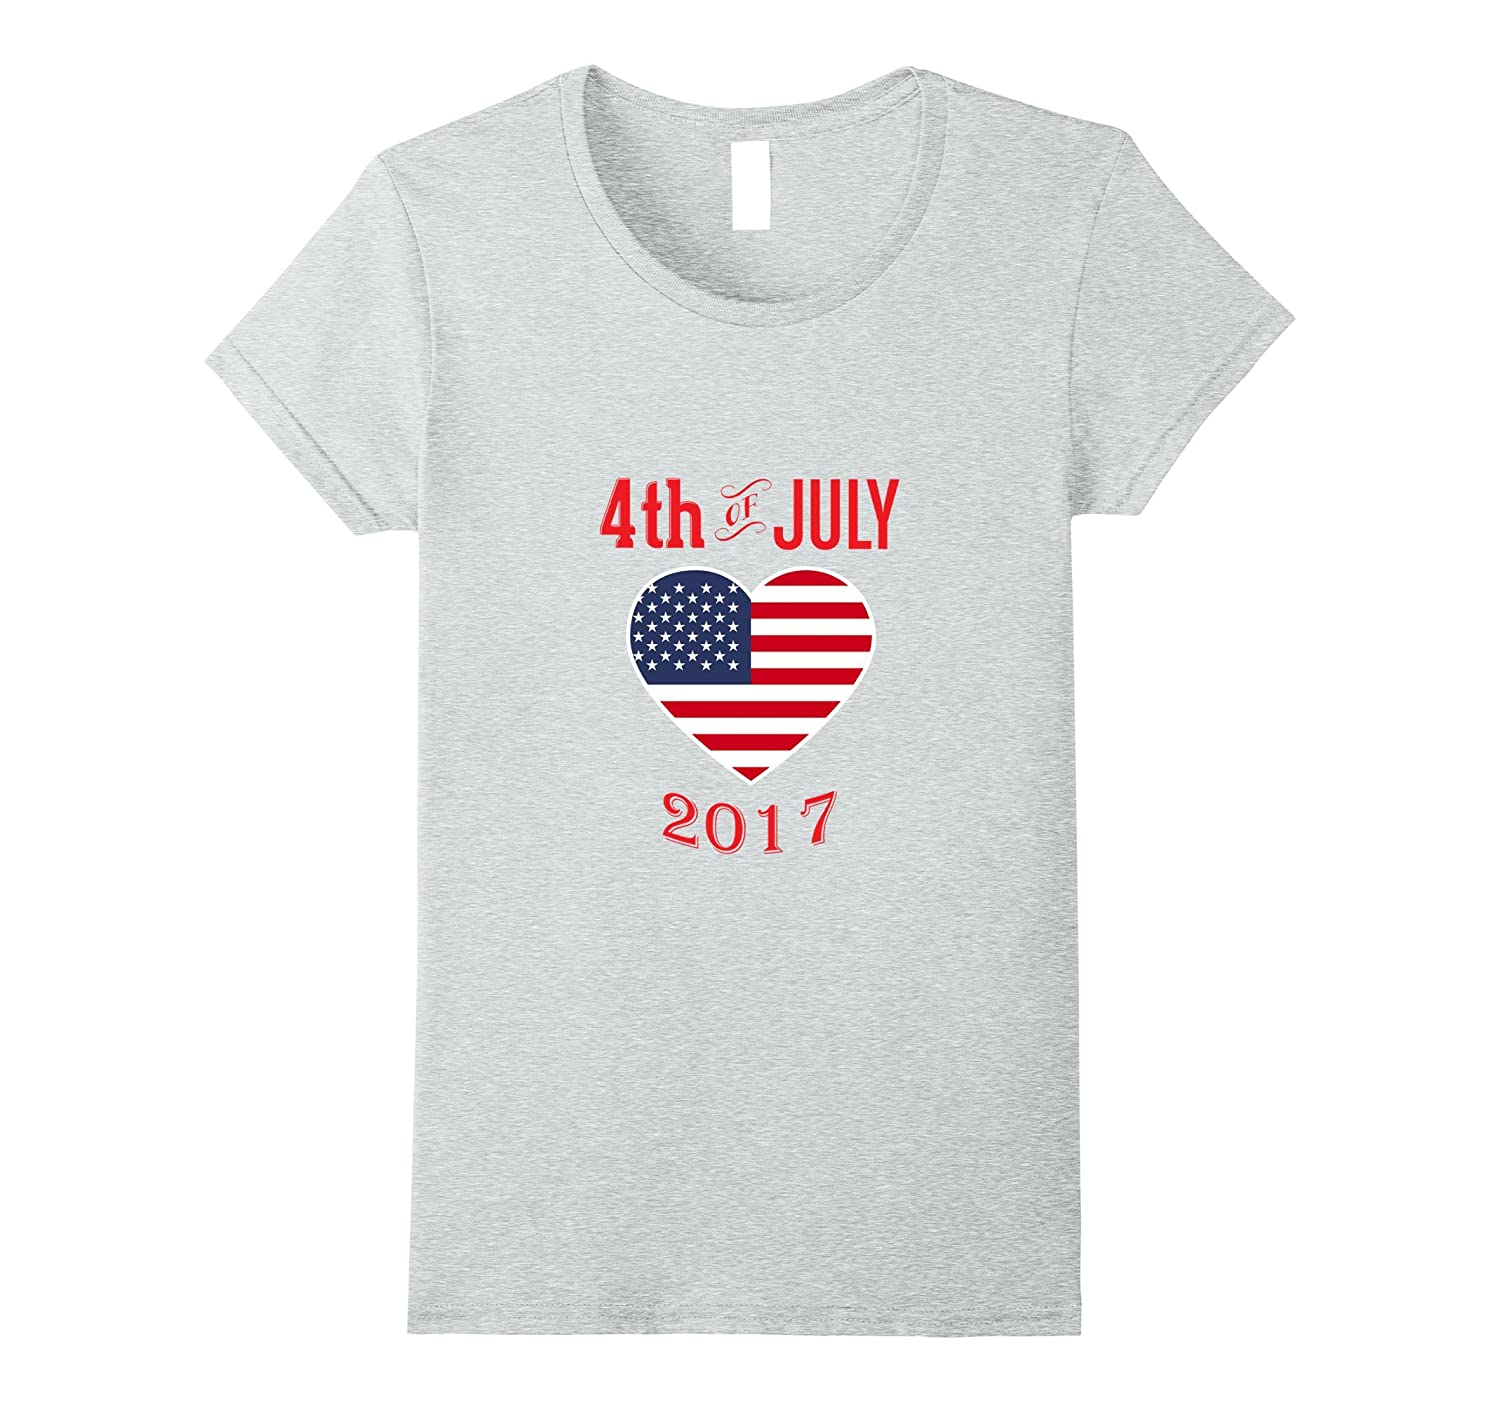 4th of July 2017 T shirt